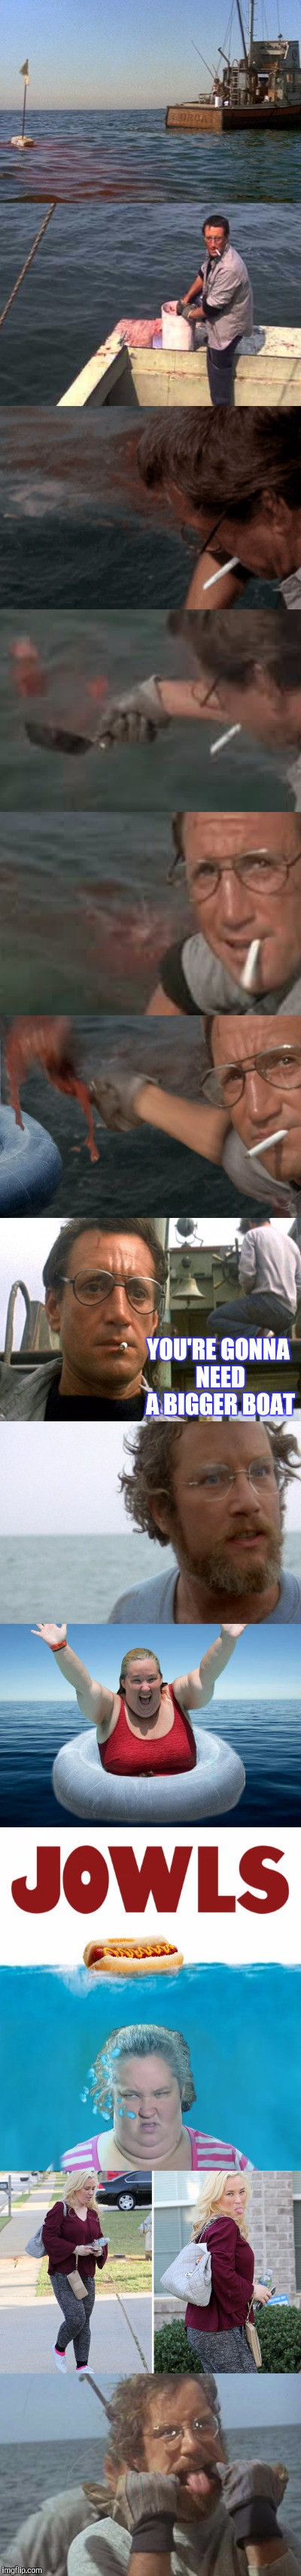 DONT GO IN THE WATER Y'ALL | YOU'RE GONNA NEED A BIGGER BOAT | image tagged in jaws,going to need a bigger boat,funny | made w/ Imgflip meme maker